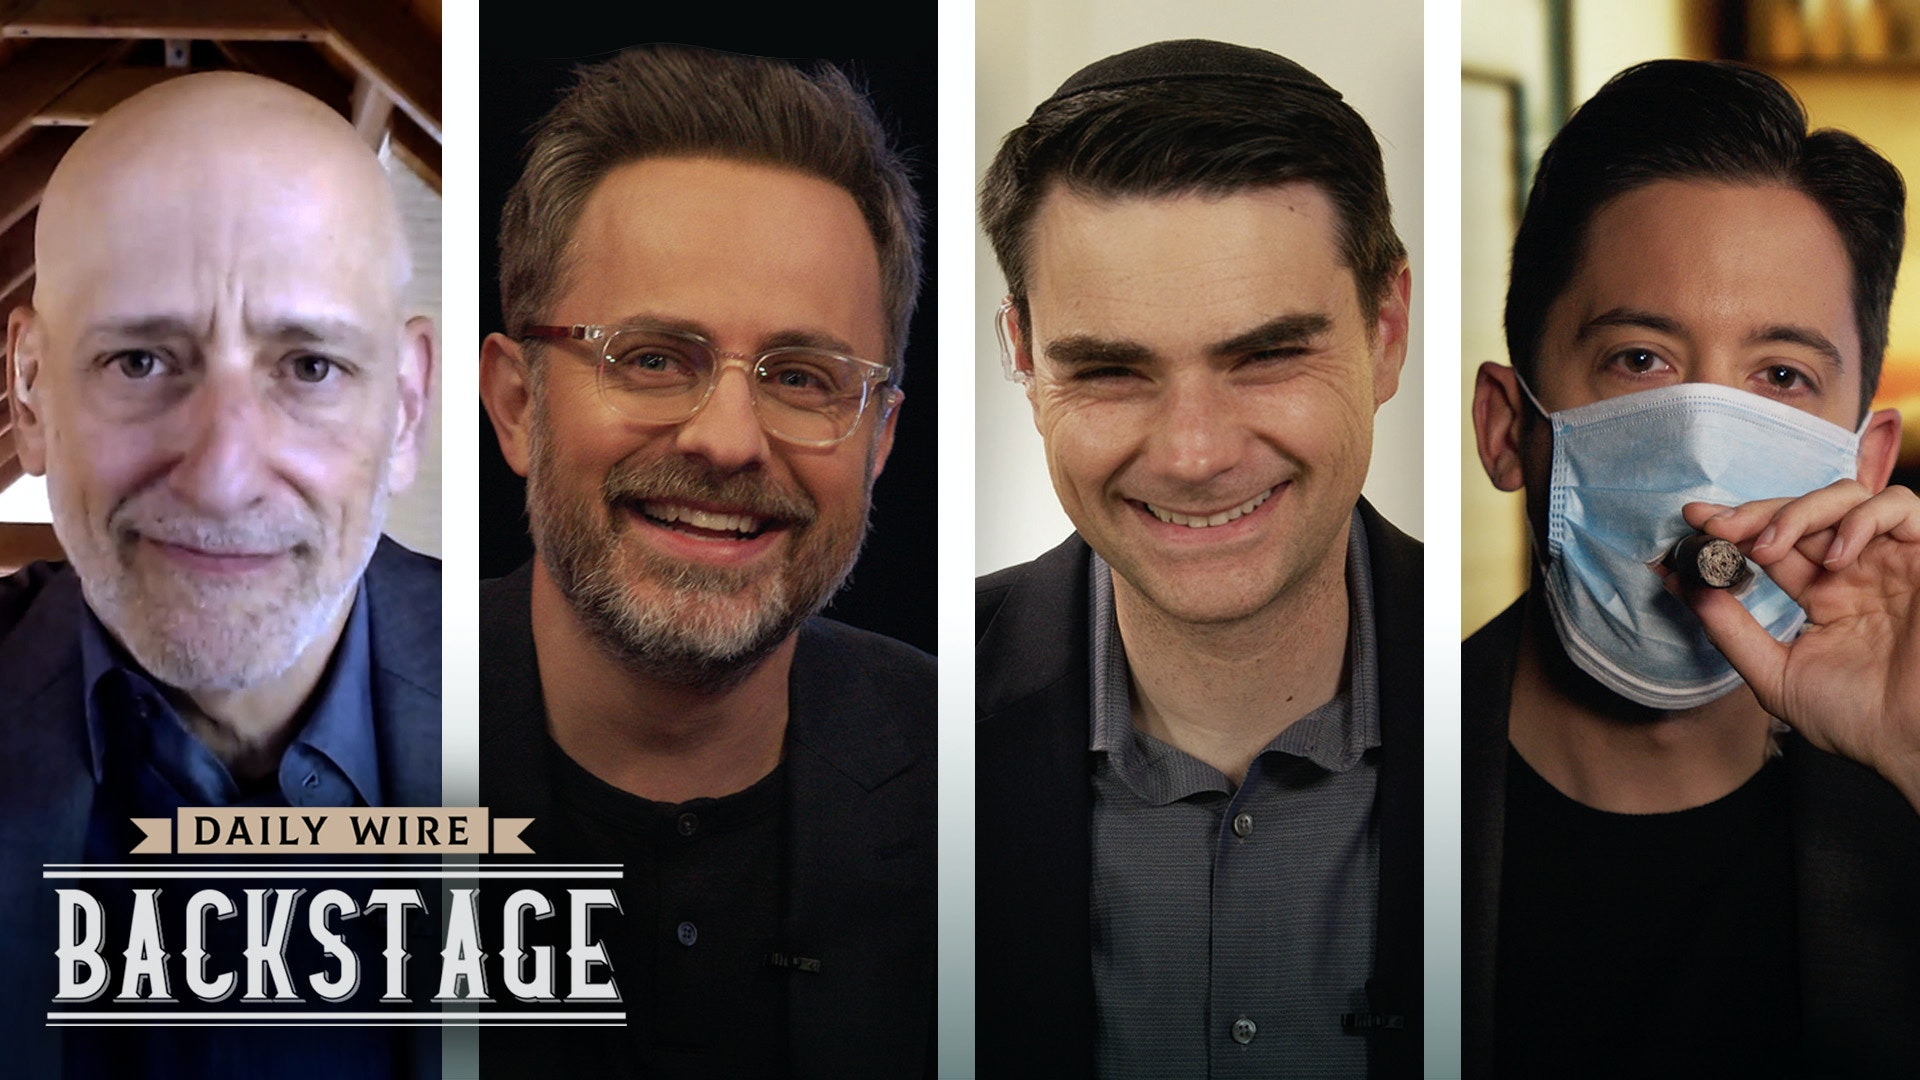 Daily Wire Backstage: Earth Day from Lockdown Edition